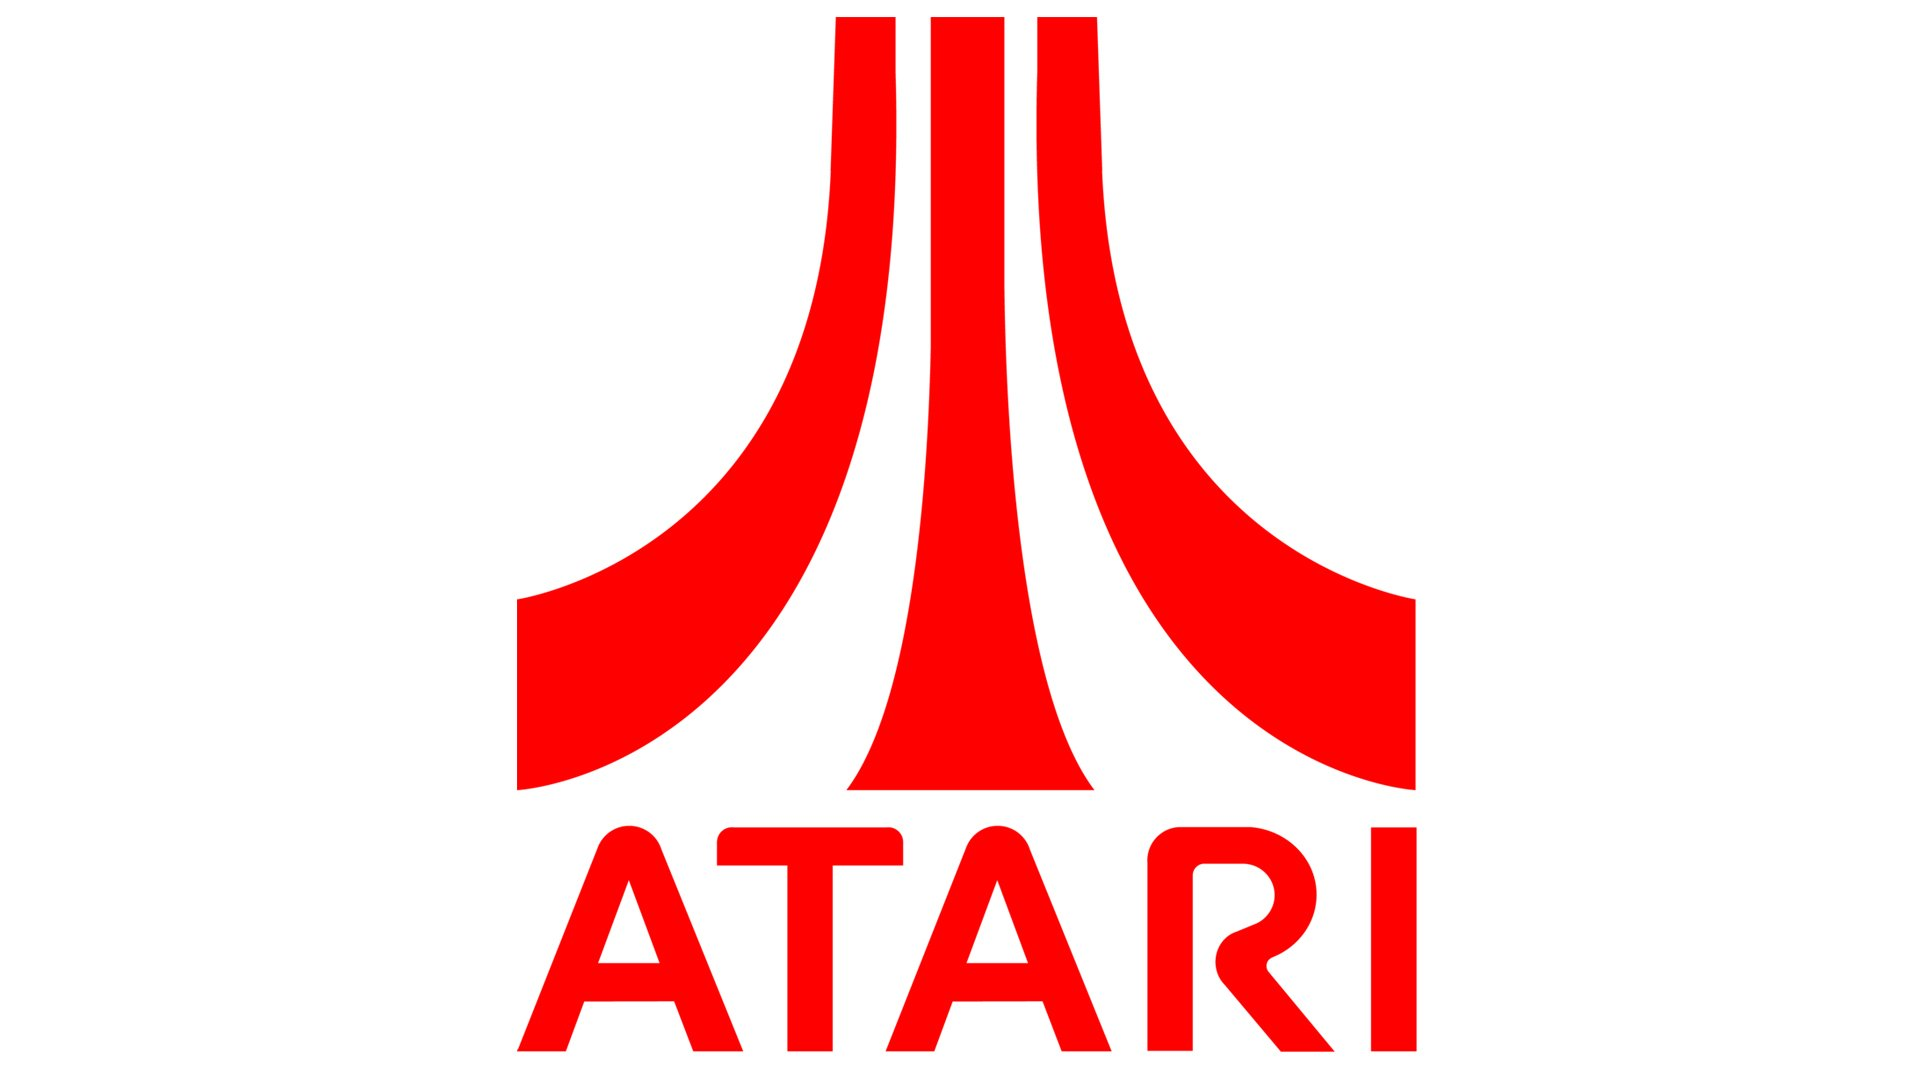 Meaning Atari logo and symbol | history and evolution